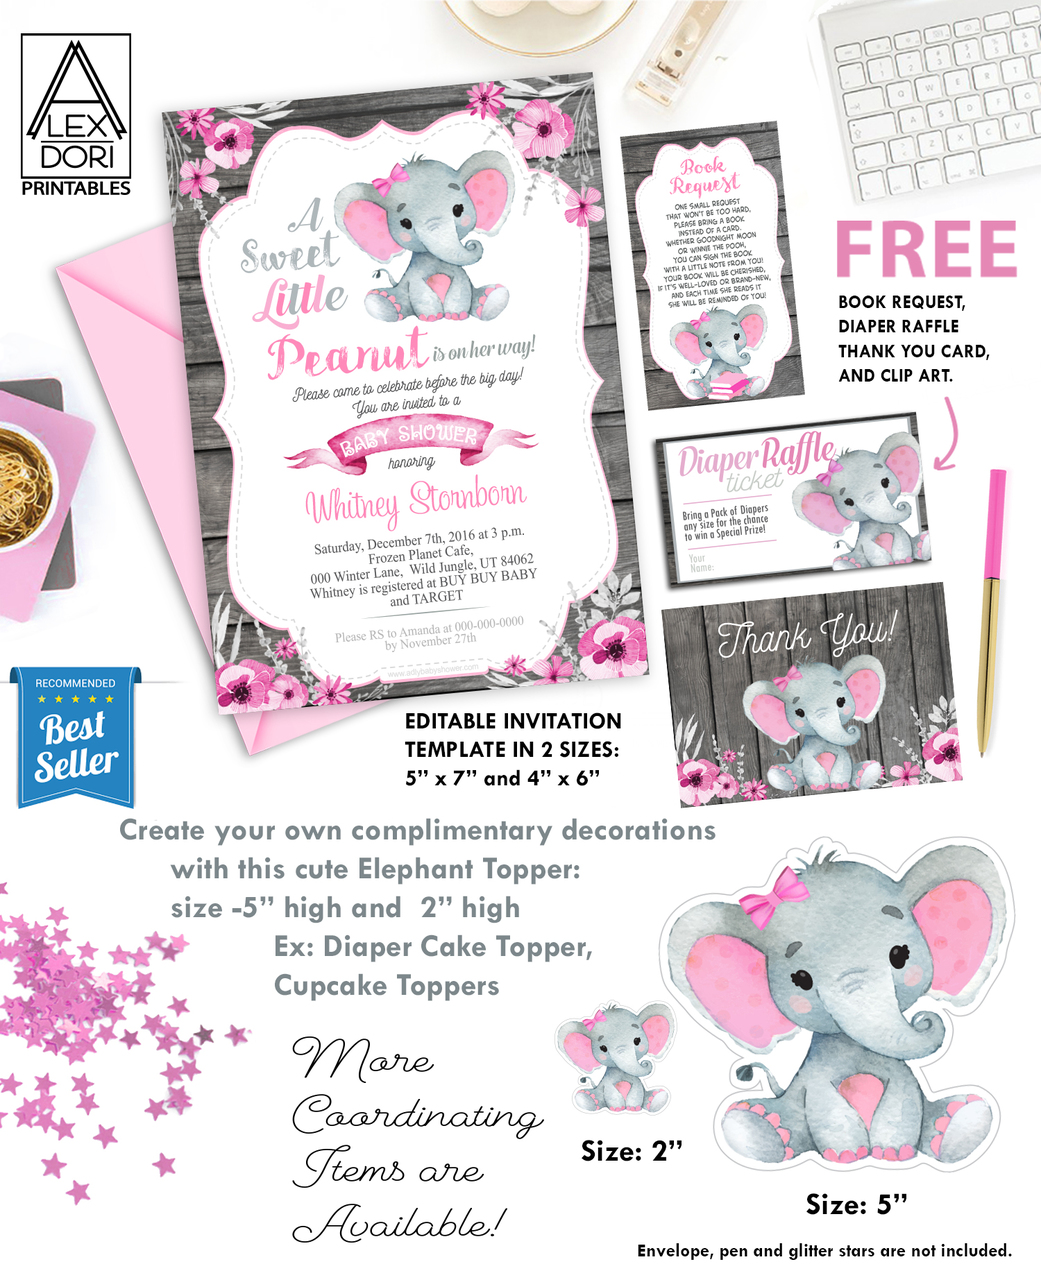 Pink Elephant Baby Shower Free Printables : elephant, shower, printables, Elephant, Shower, Invitation,, Wooden, Background, Printable, Invitation, Peanut, Invite-Girl, Shower-FREE, Diaper, Raffle, Invitations, Digital, Party, Designs